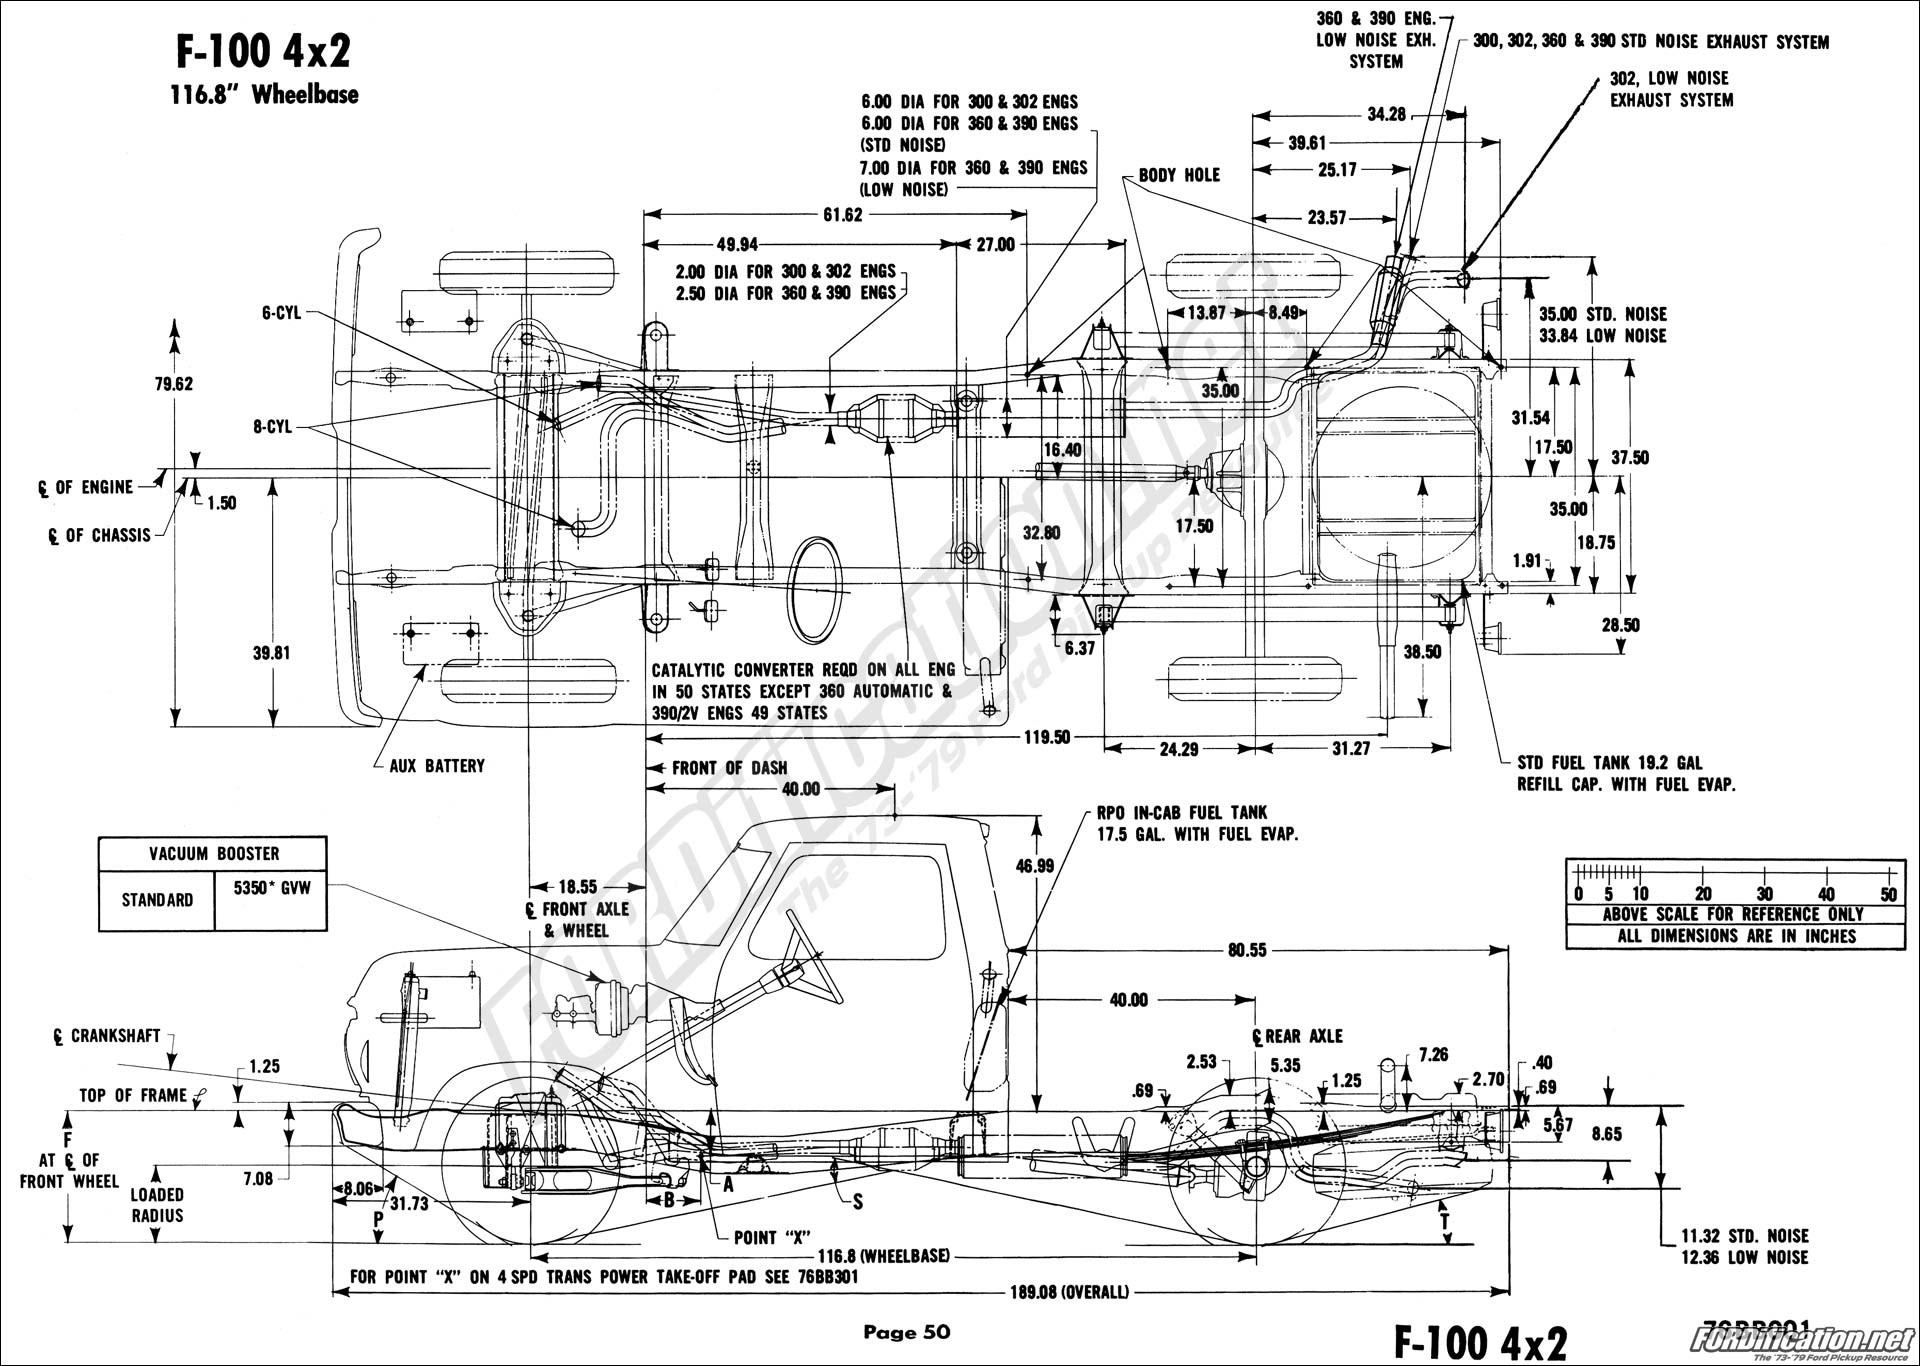 2005 Ford E350 Fuse Box Diagram on 2008 mercedes c300 fuse box diagram